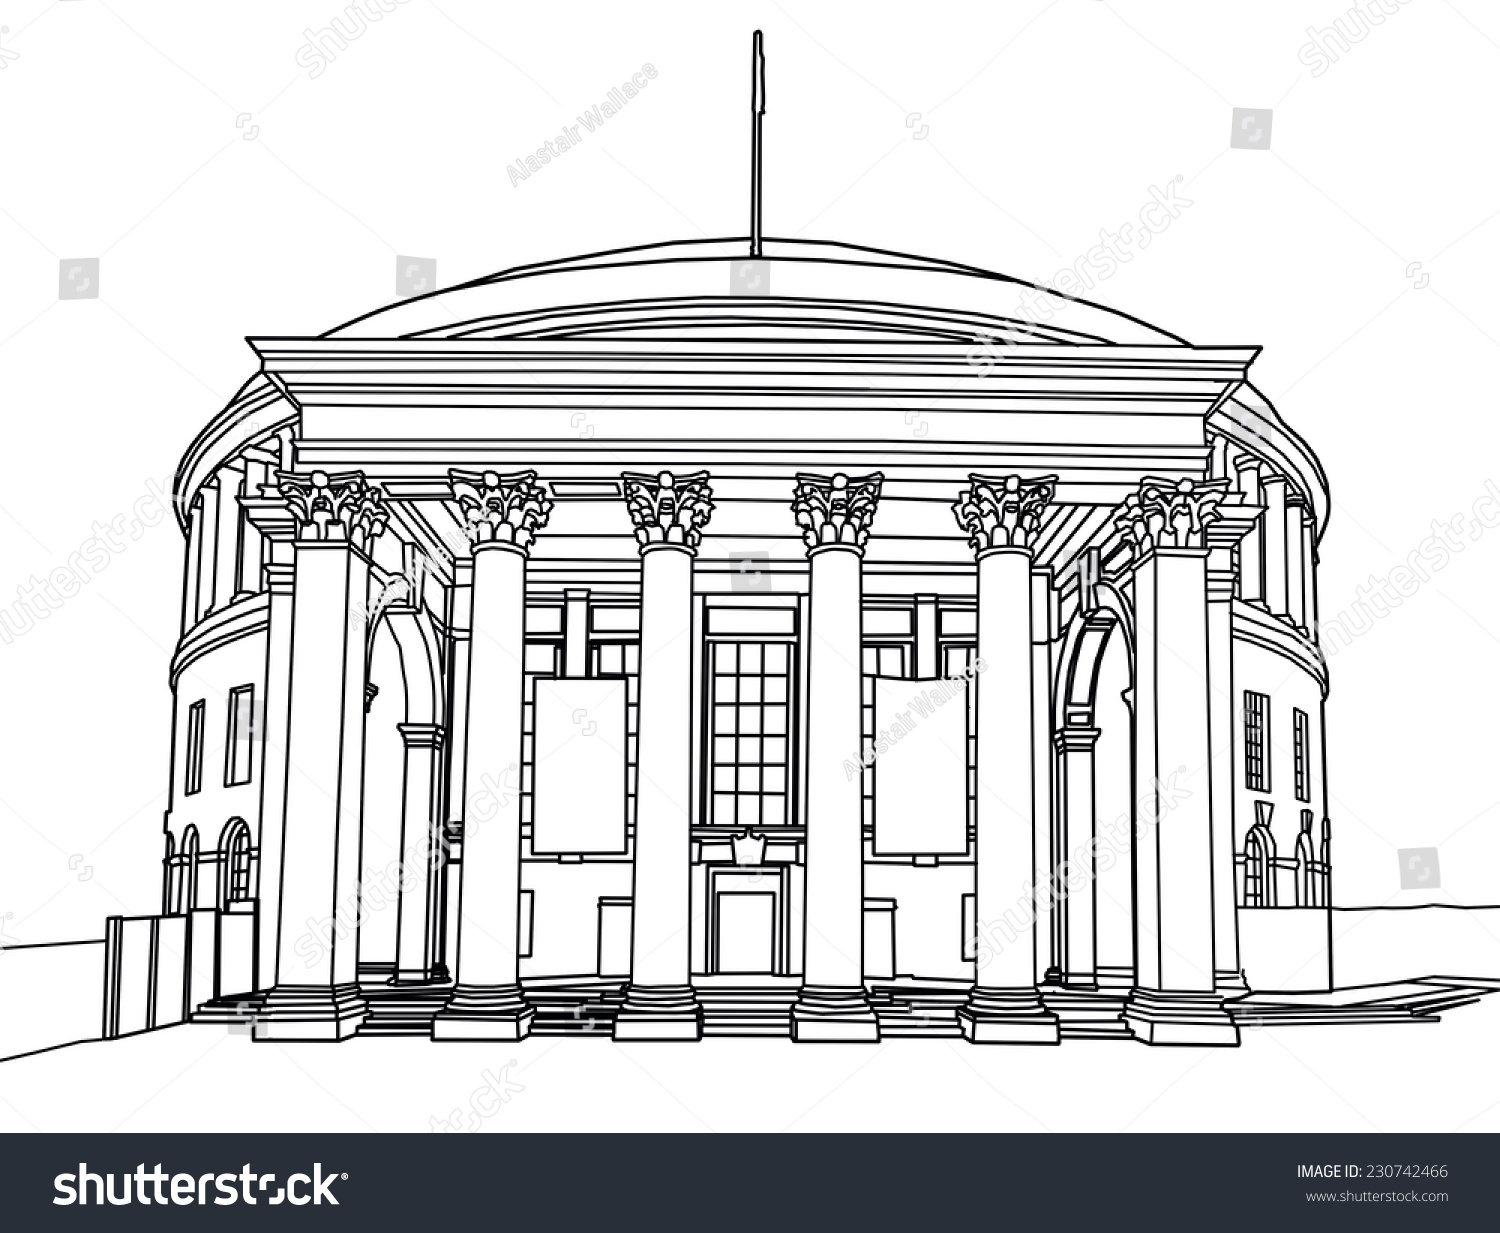 Line Drawing Library : Line drawing of the central library building manchester